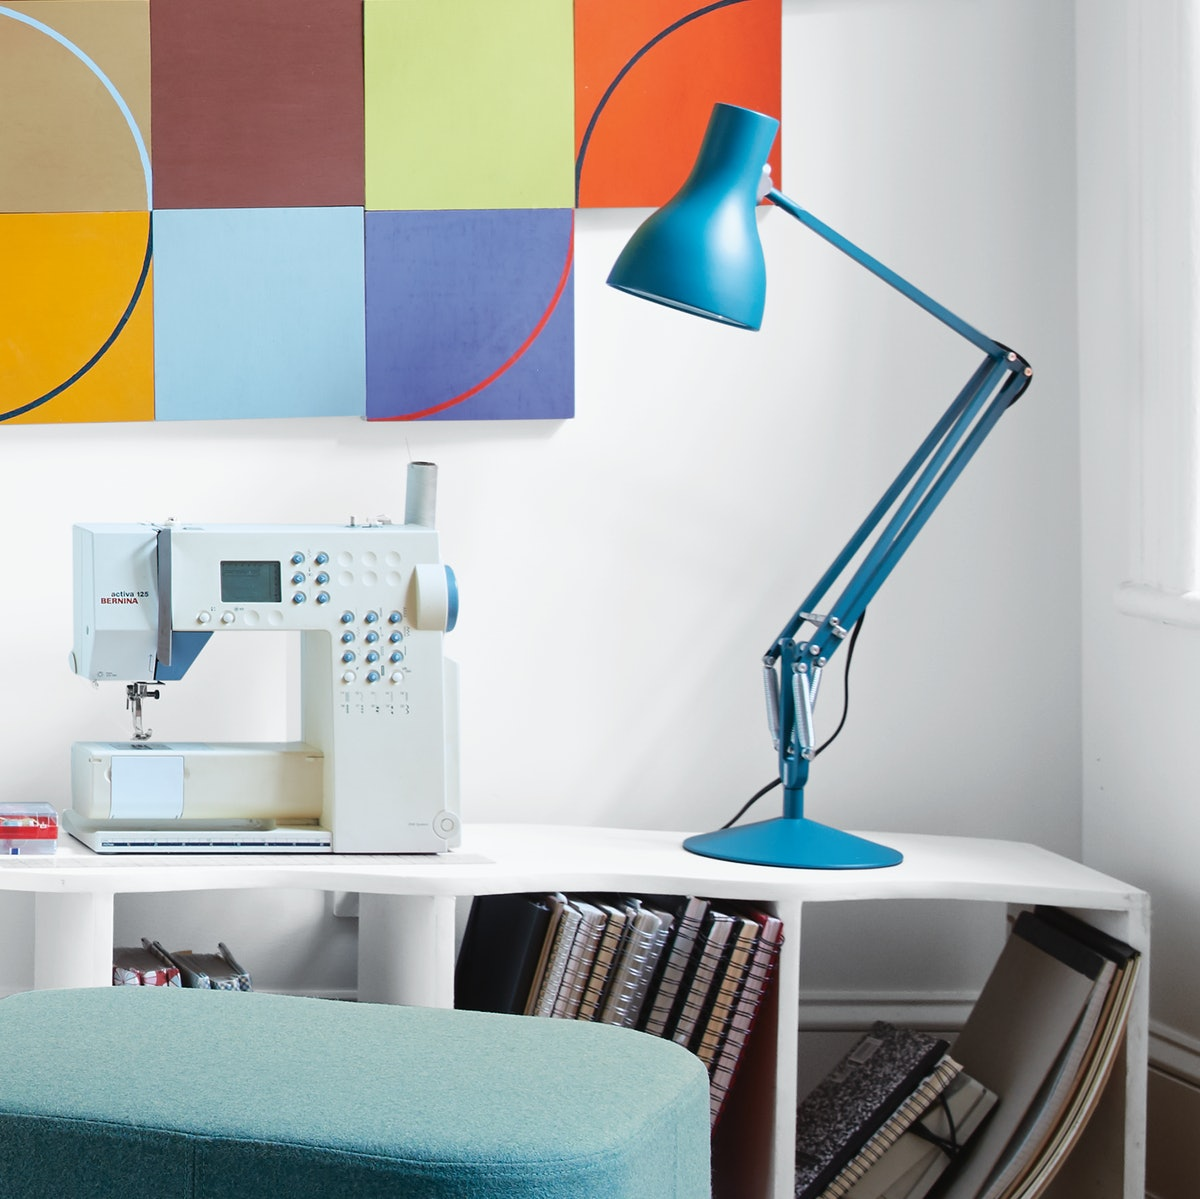 Type 75 Task Lamp with USM Haller Closed Storage Credenza